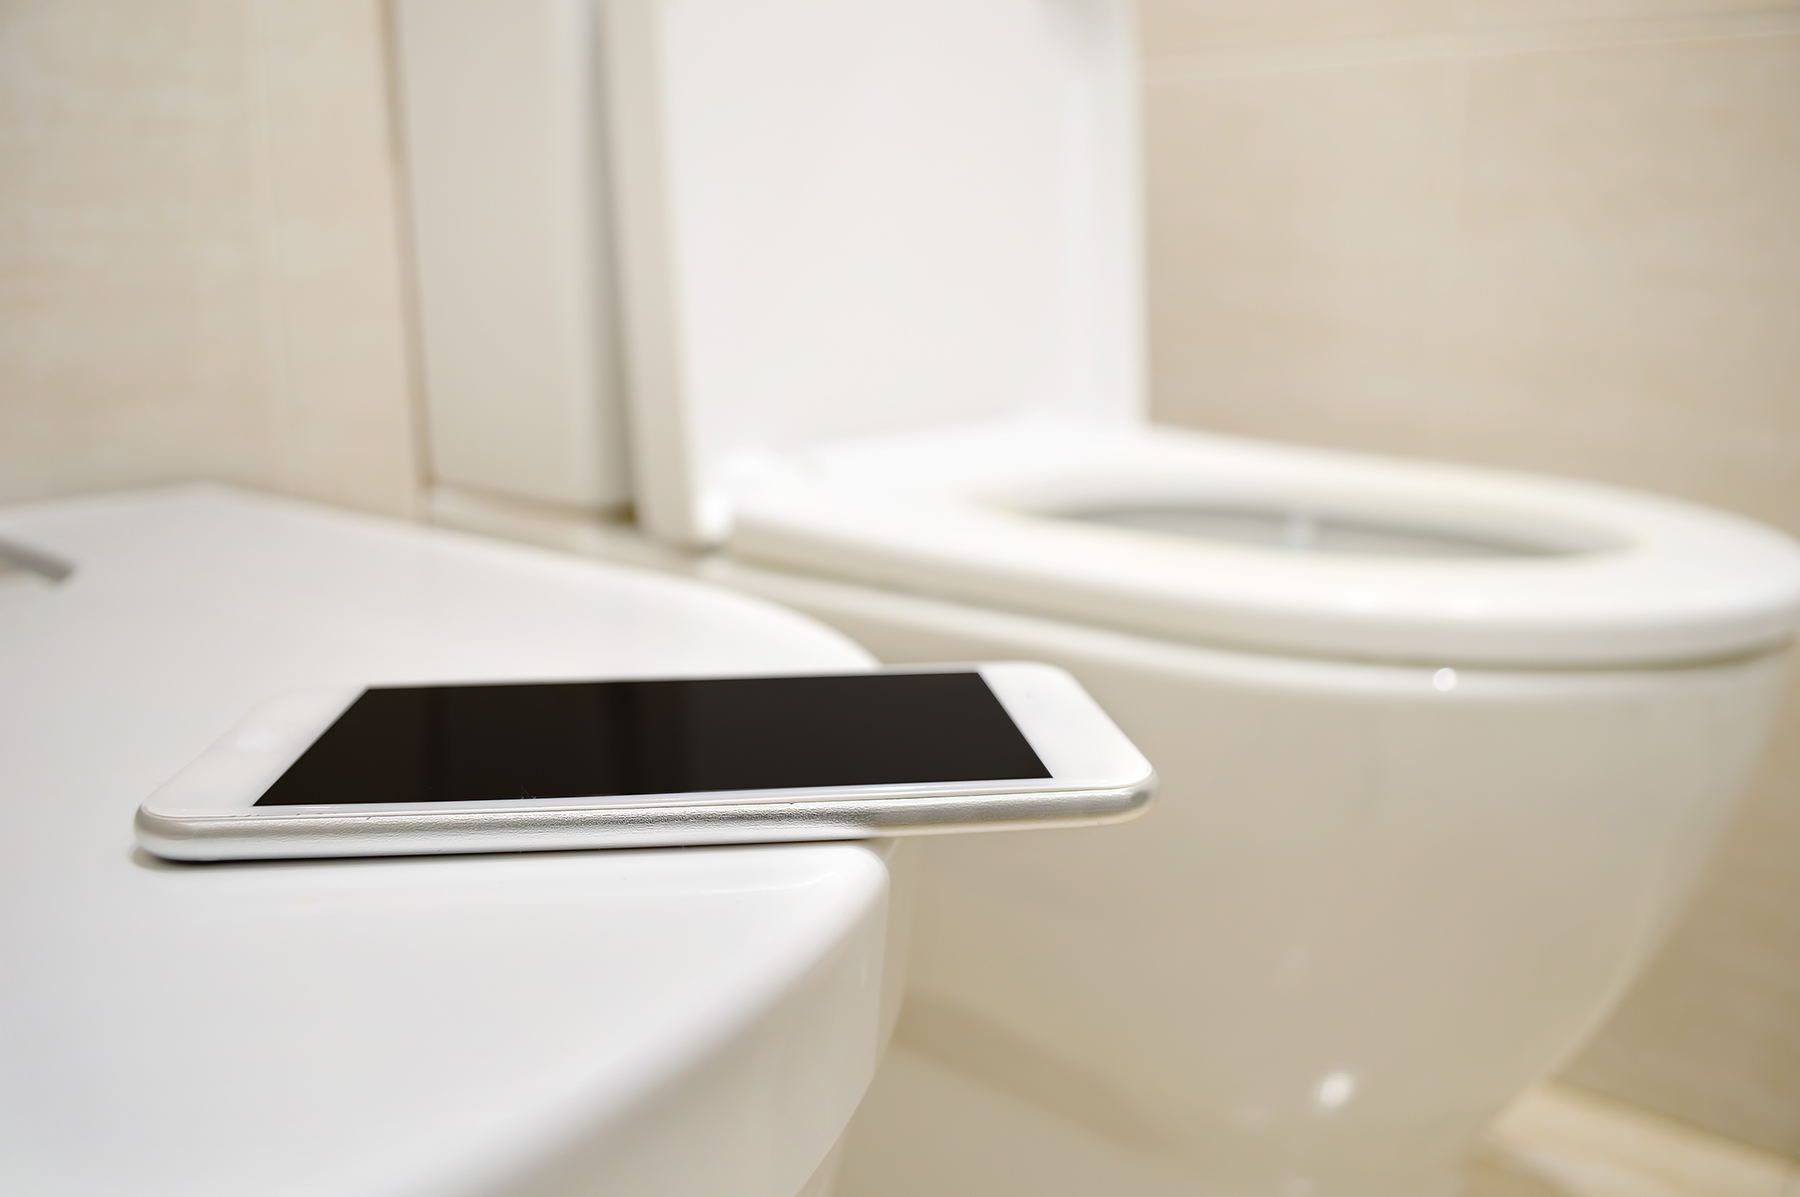 New Survey Reveals Just How Often People Use Their Phones in the Bathroom. New Survey Reveals Just How Often People Use Their Phones in the